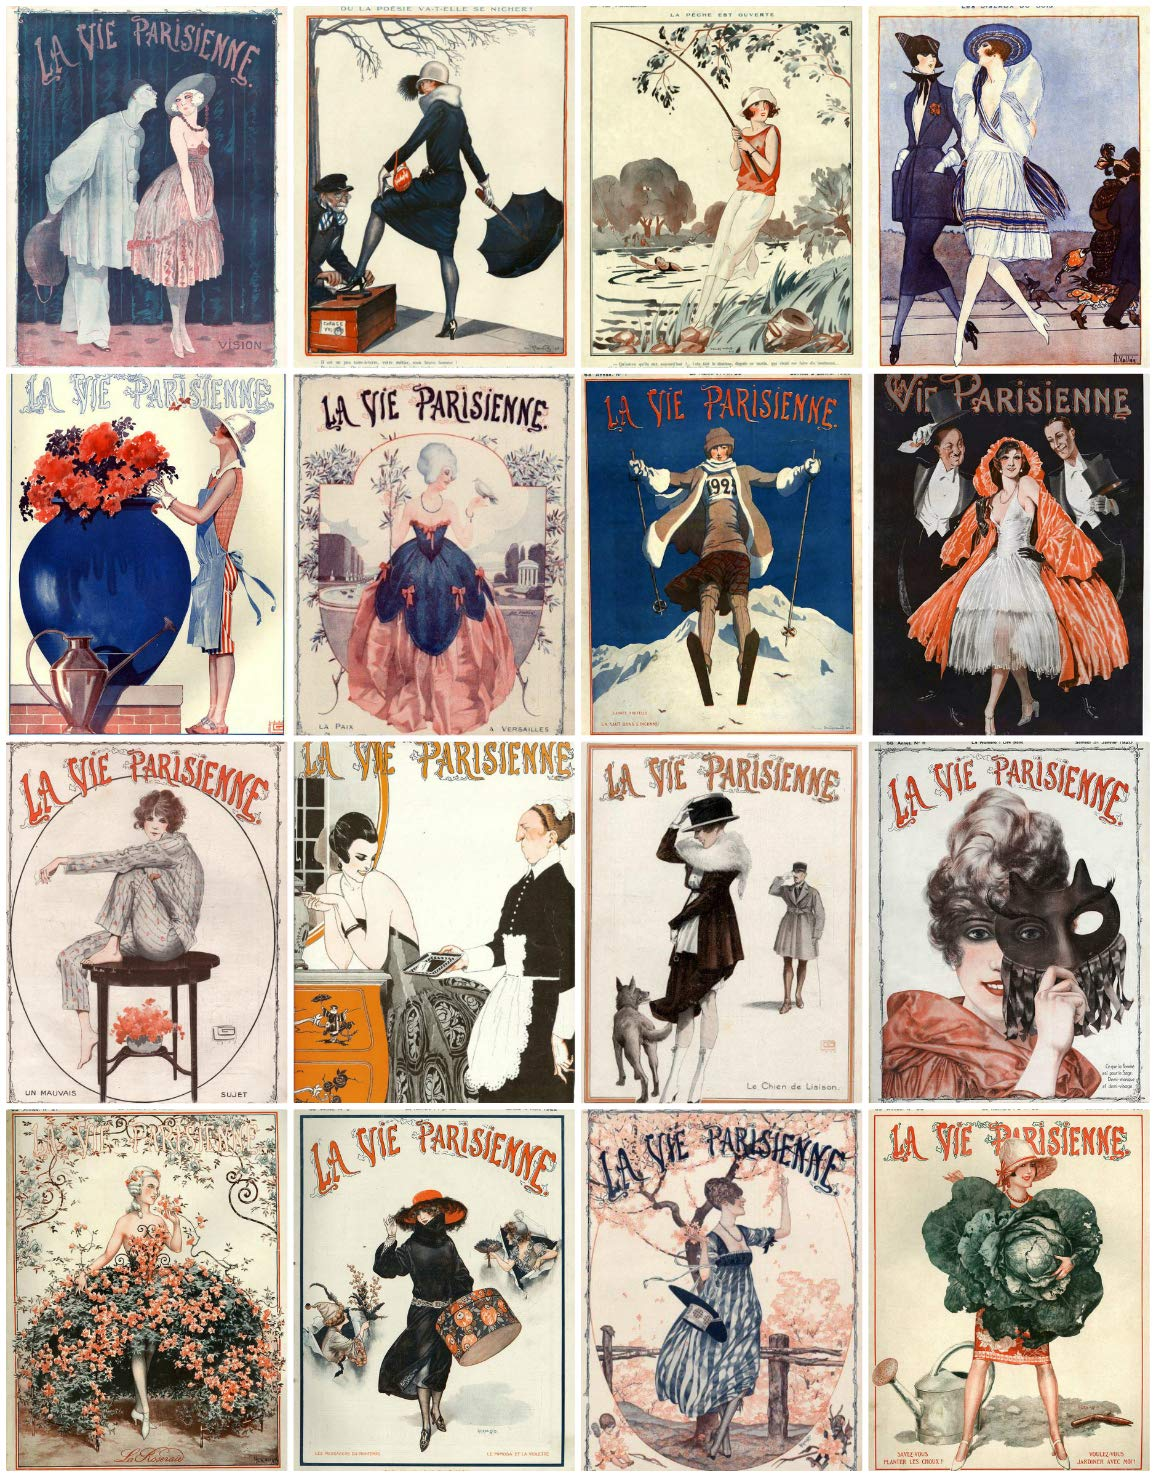 Labels Vintage Printed Art DecoLa Vie Parisienne Reproduction Magazine Covers Images Collage Sheet #109 Scrapbooking Crafts Card Making Decoupage